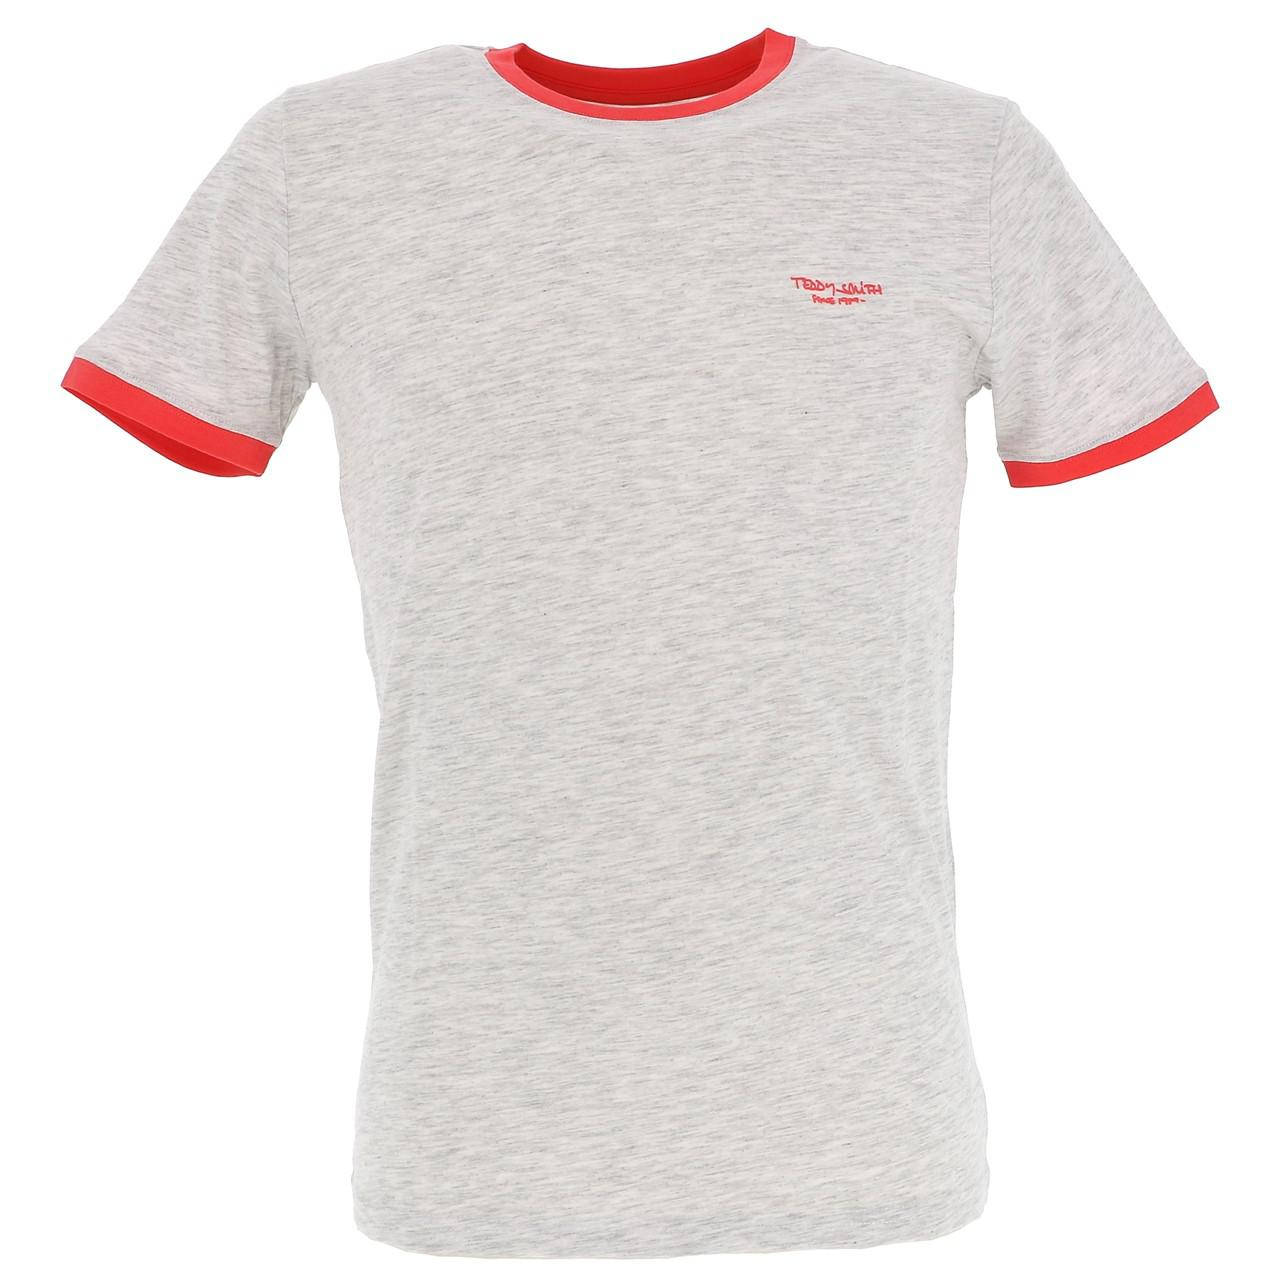 Short-Sleeve-T-Shirt-Teddy-Smith-the-Tee-Wht-Mel-Coral-White-18160-Does-Not